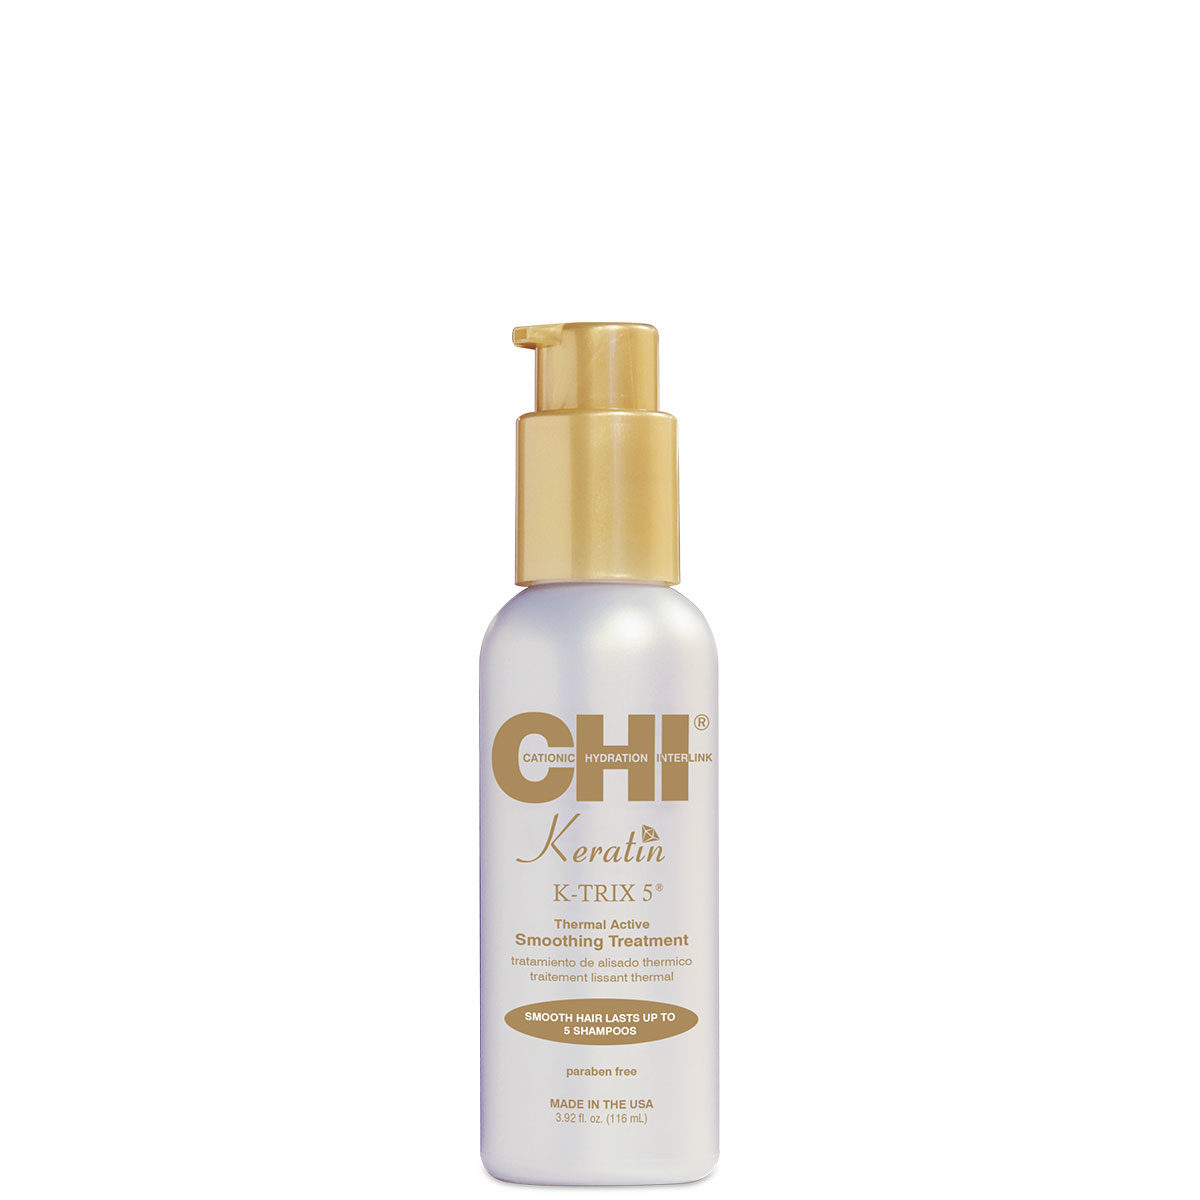 CHI Keratin K-TRIX 5 Smoothing Treatment 4 fl. oz. - CHI Keratin - CHI Haircare